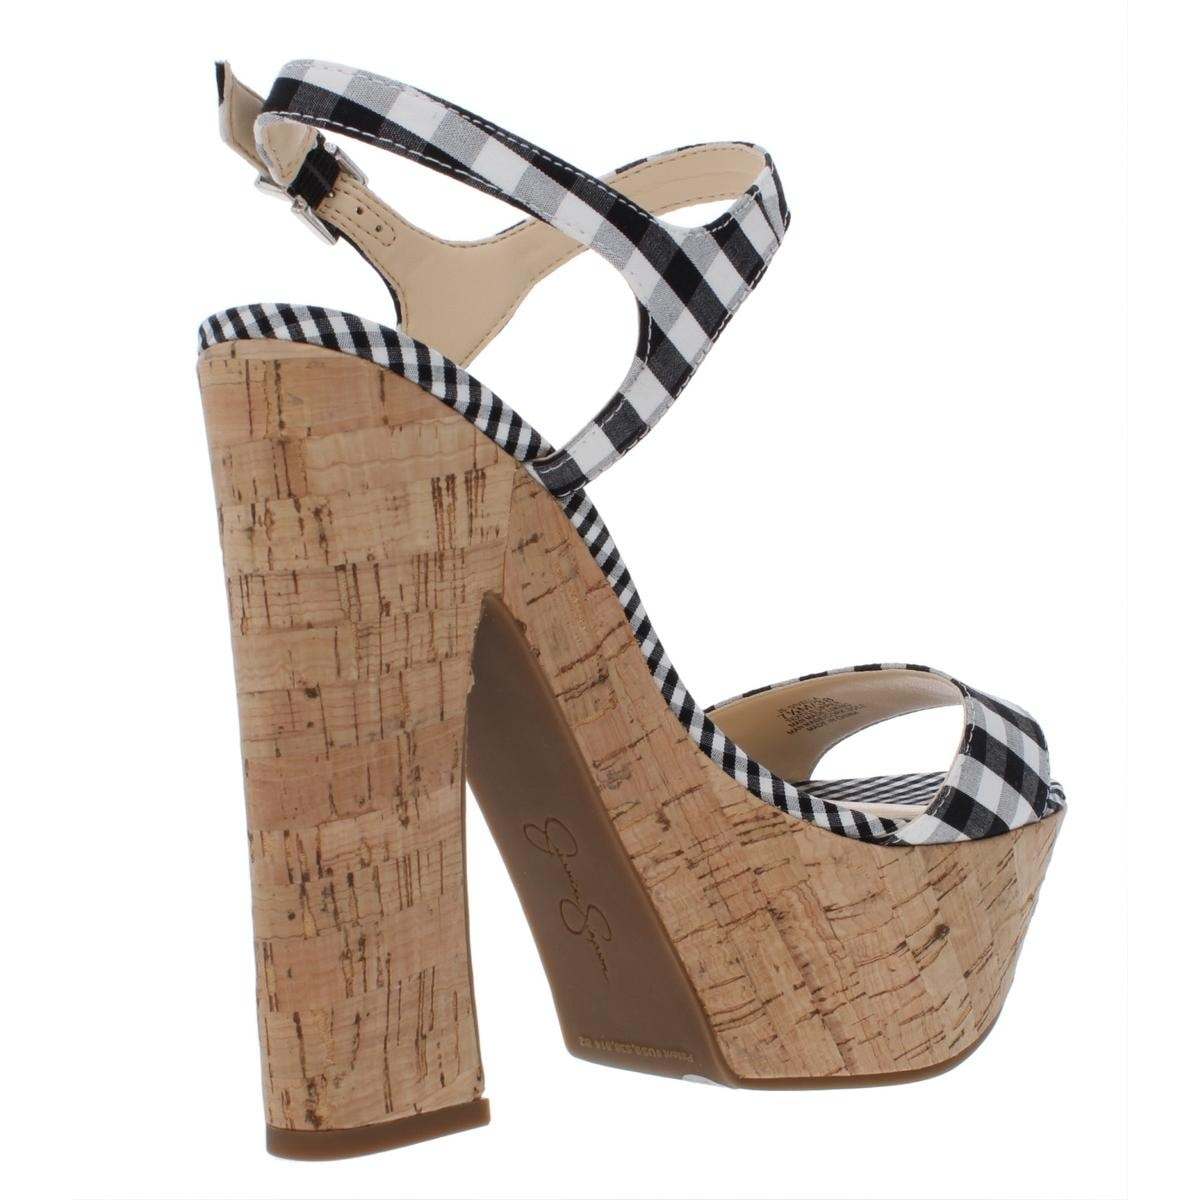 4227f47e42a5 Shop Jessica Simpson Womens Divella Platform Sandals Leather High Heel -  Free Shipping On Orders Over  45 - Overstock - 27619670